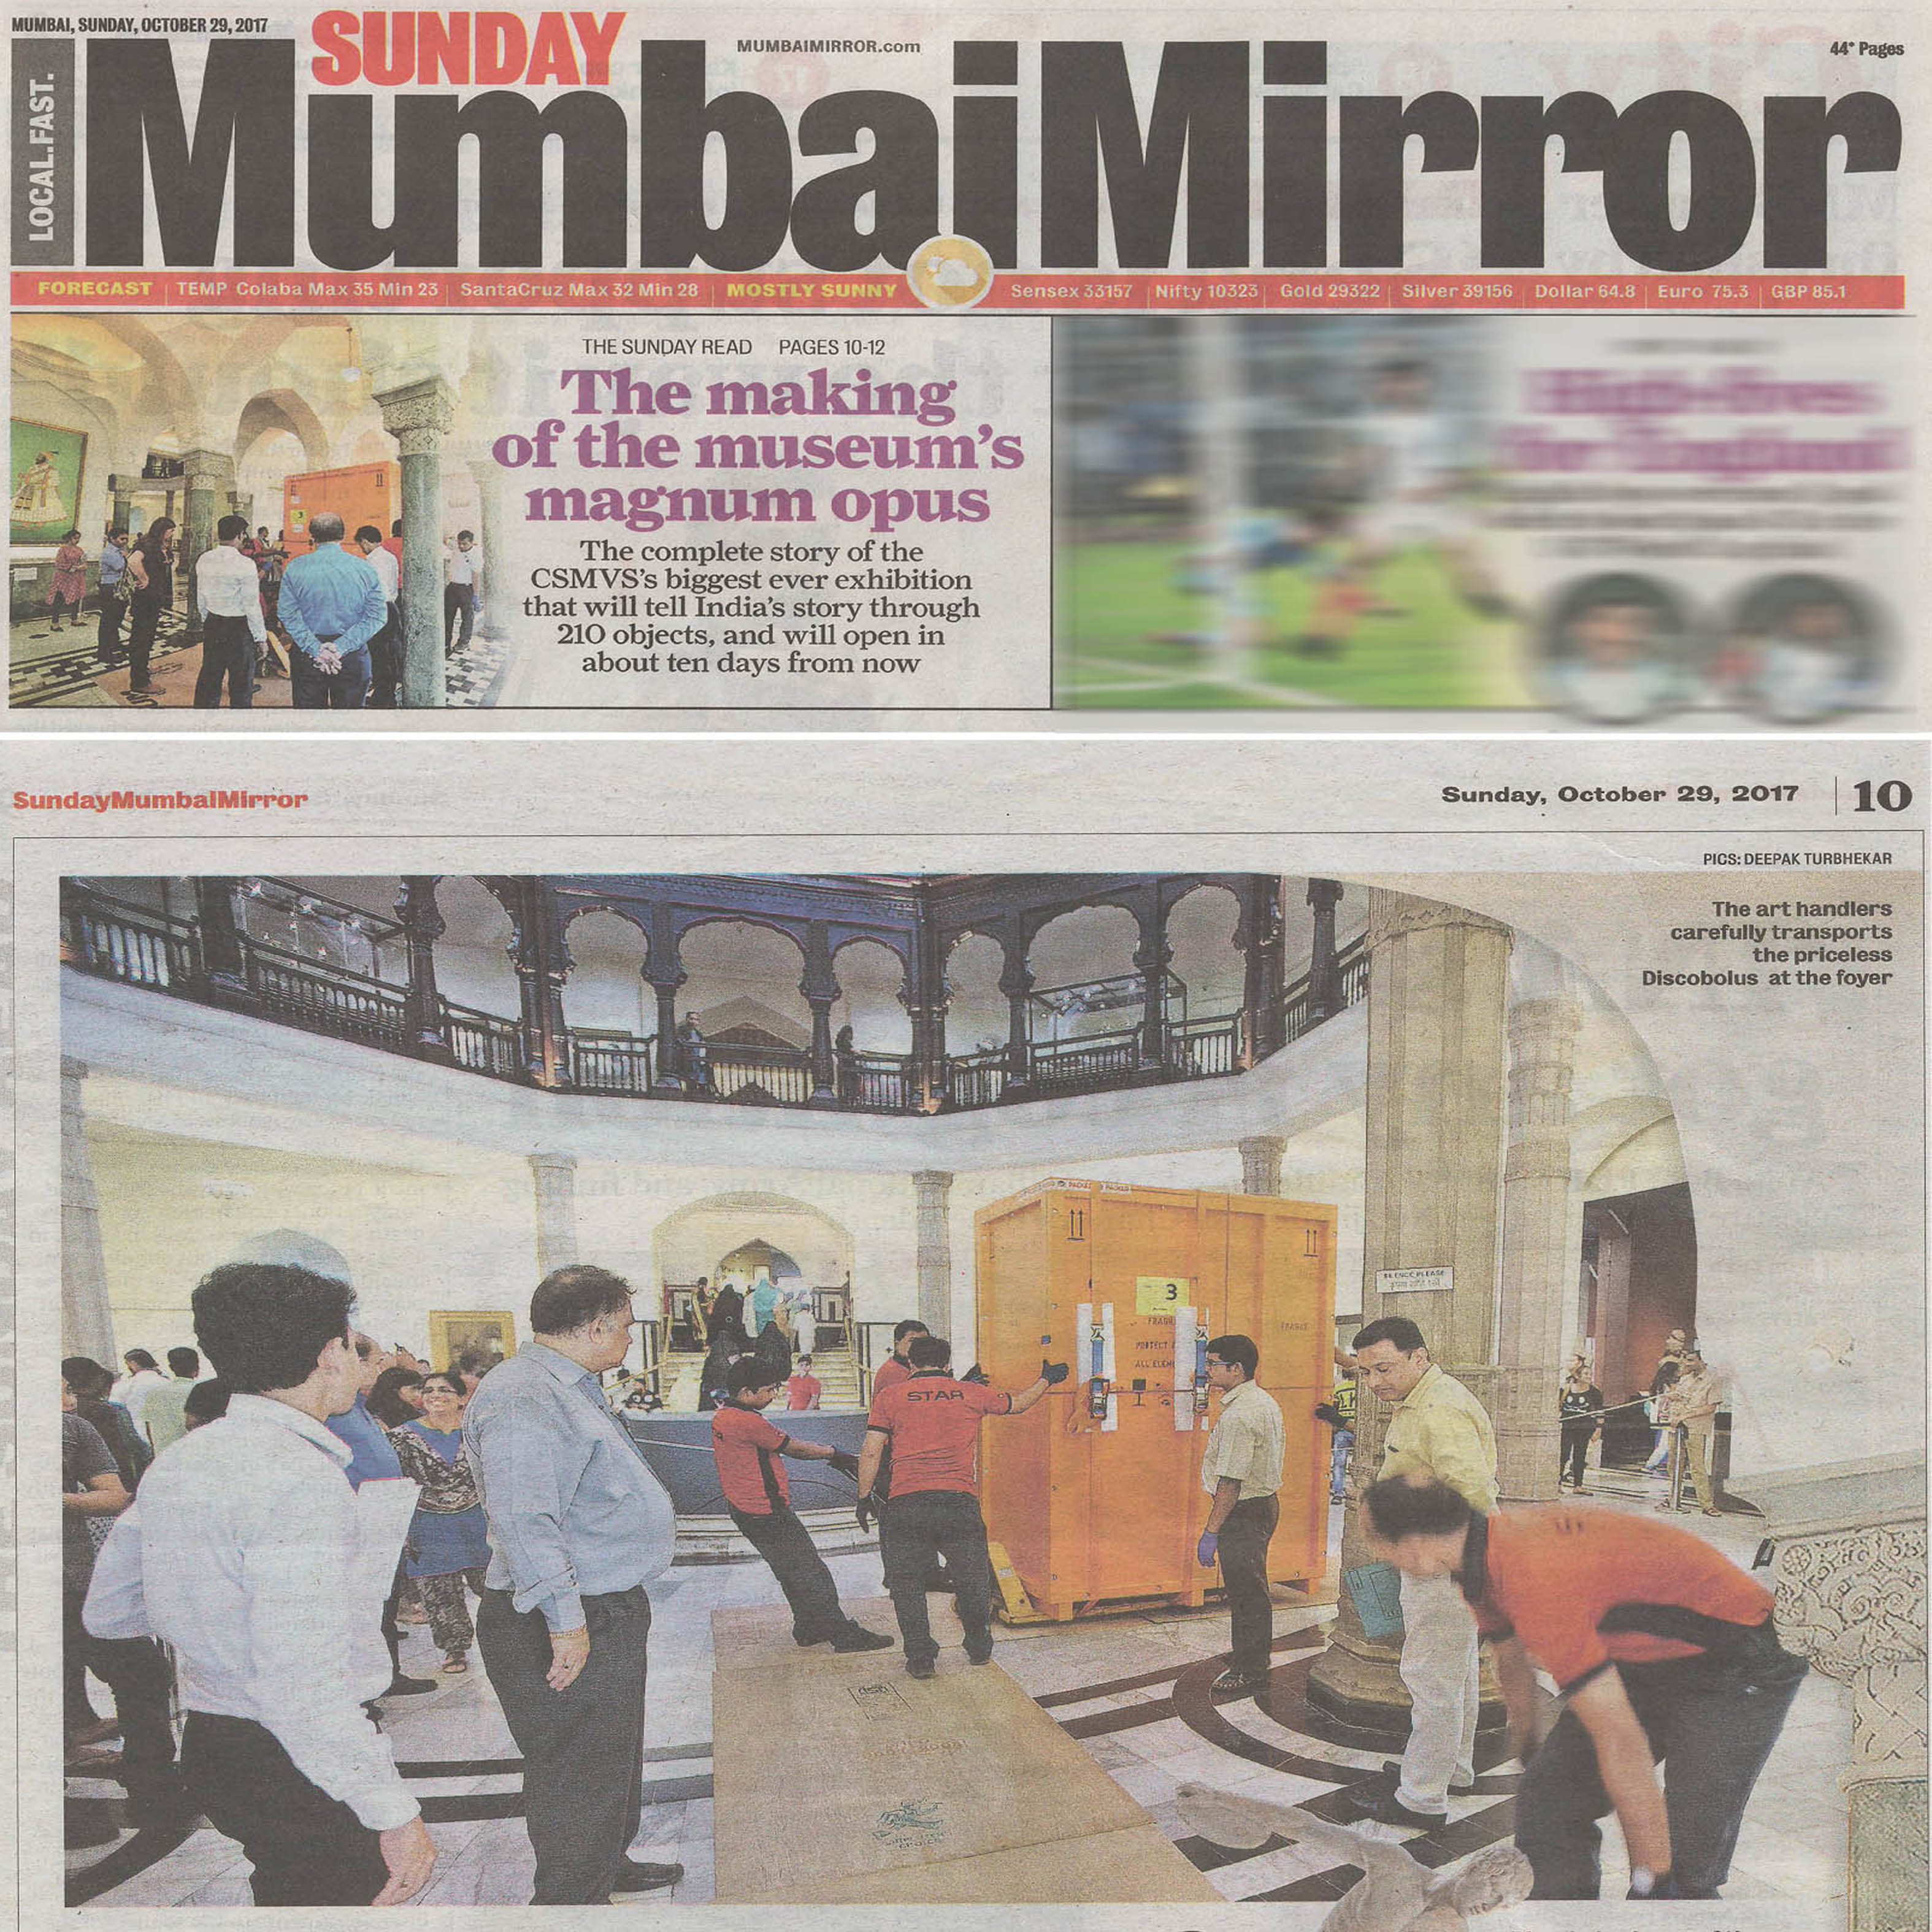 Sunday Mumbai Mirror - The Making of the Museum's magnum opus ,29th October 2017